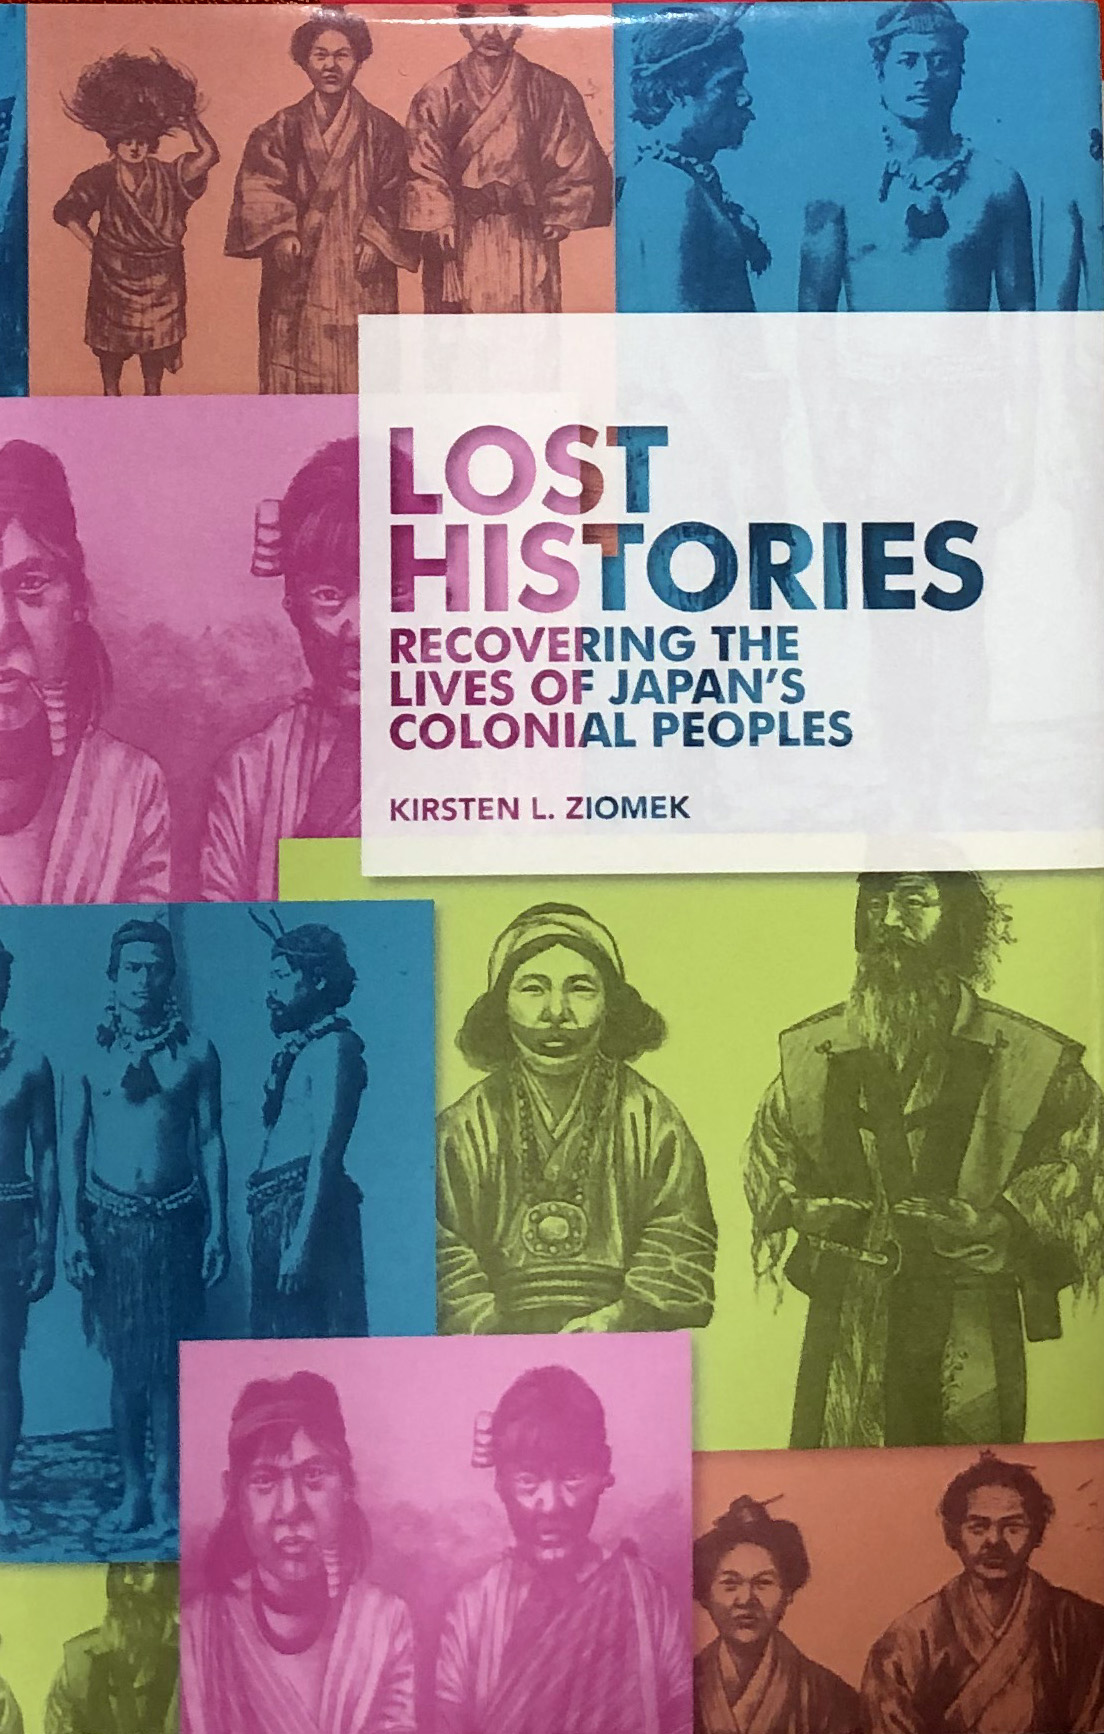 『LOST HISTORIES RECOVERING THE LIVES OF JAPAN'S COLONIAL PEOPLES』発刊